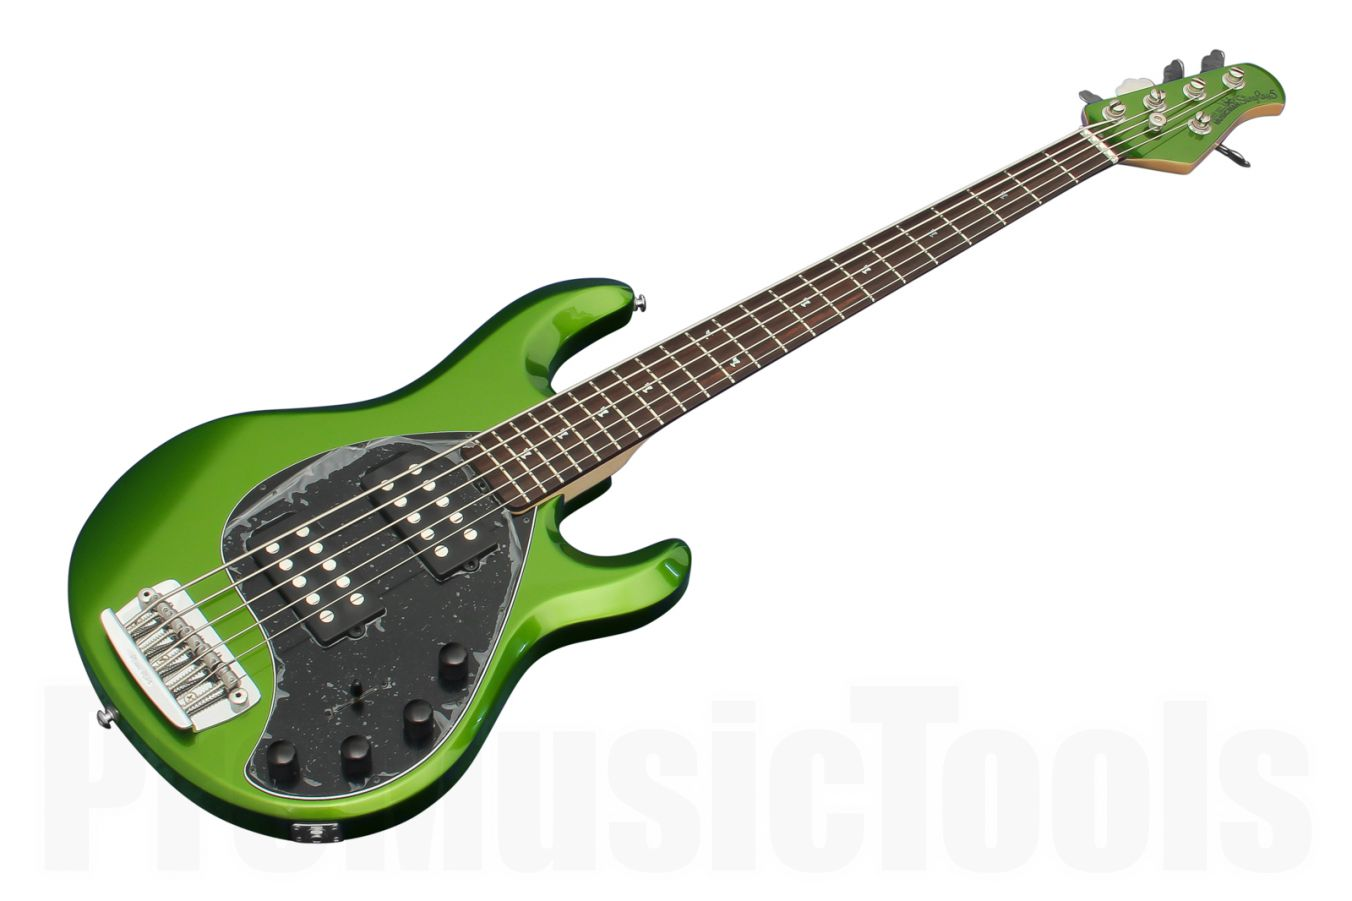 Music Man USA Stingray 5 HH DD - Dargie Delight Limited Edition MH